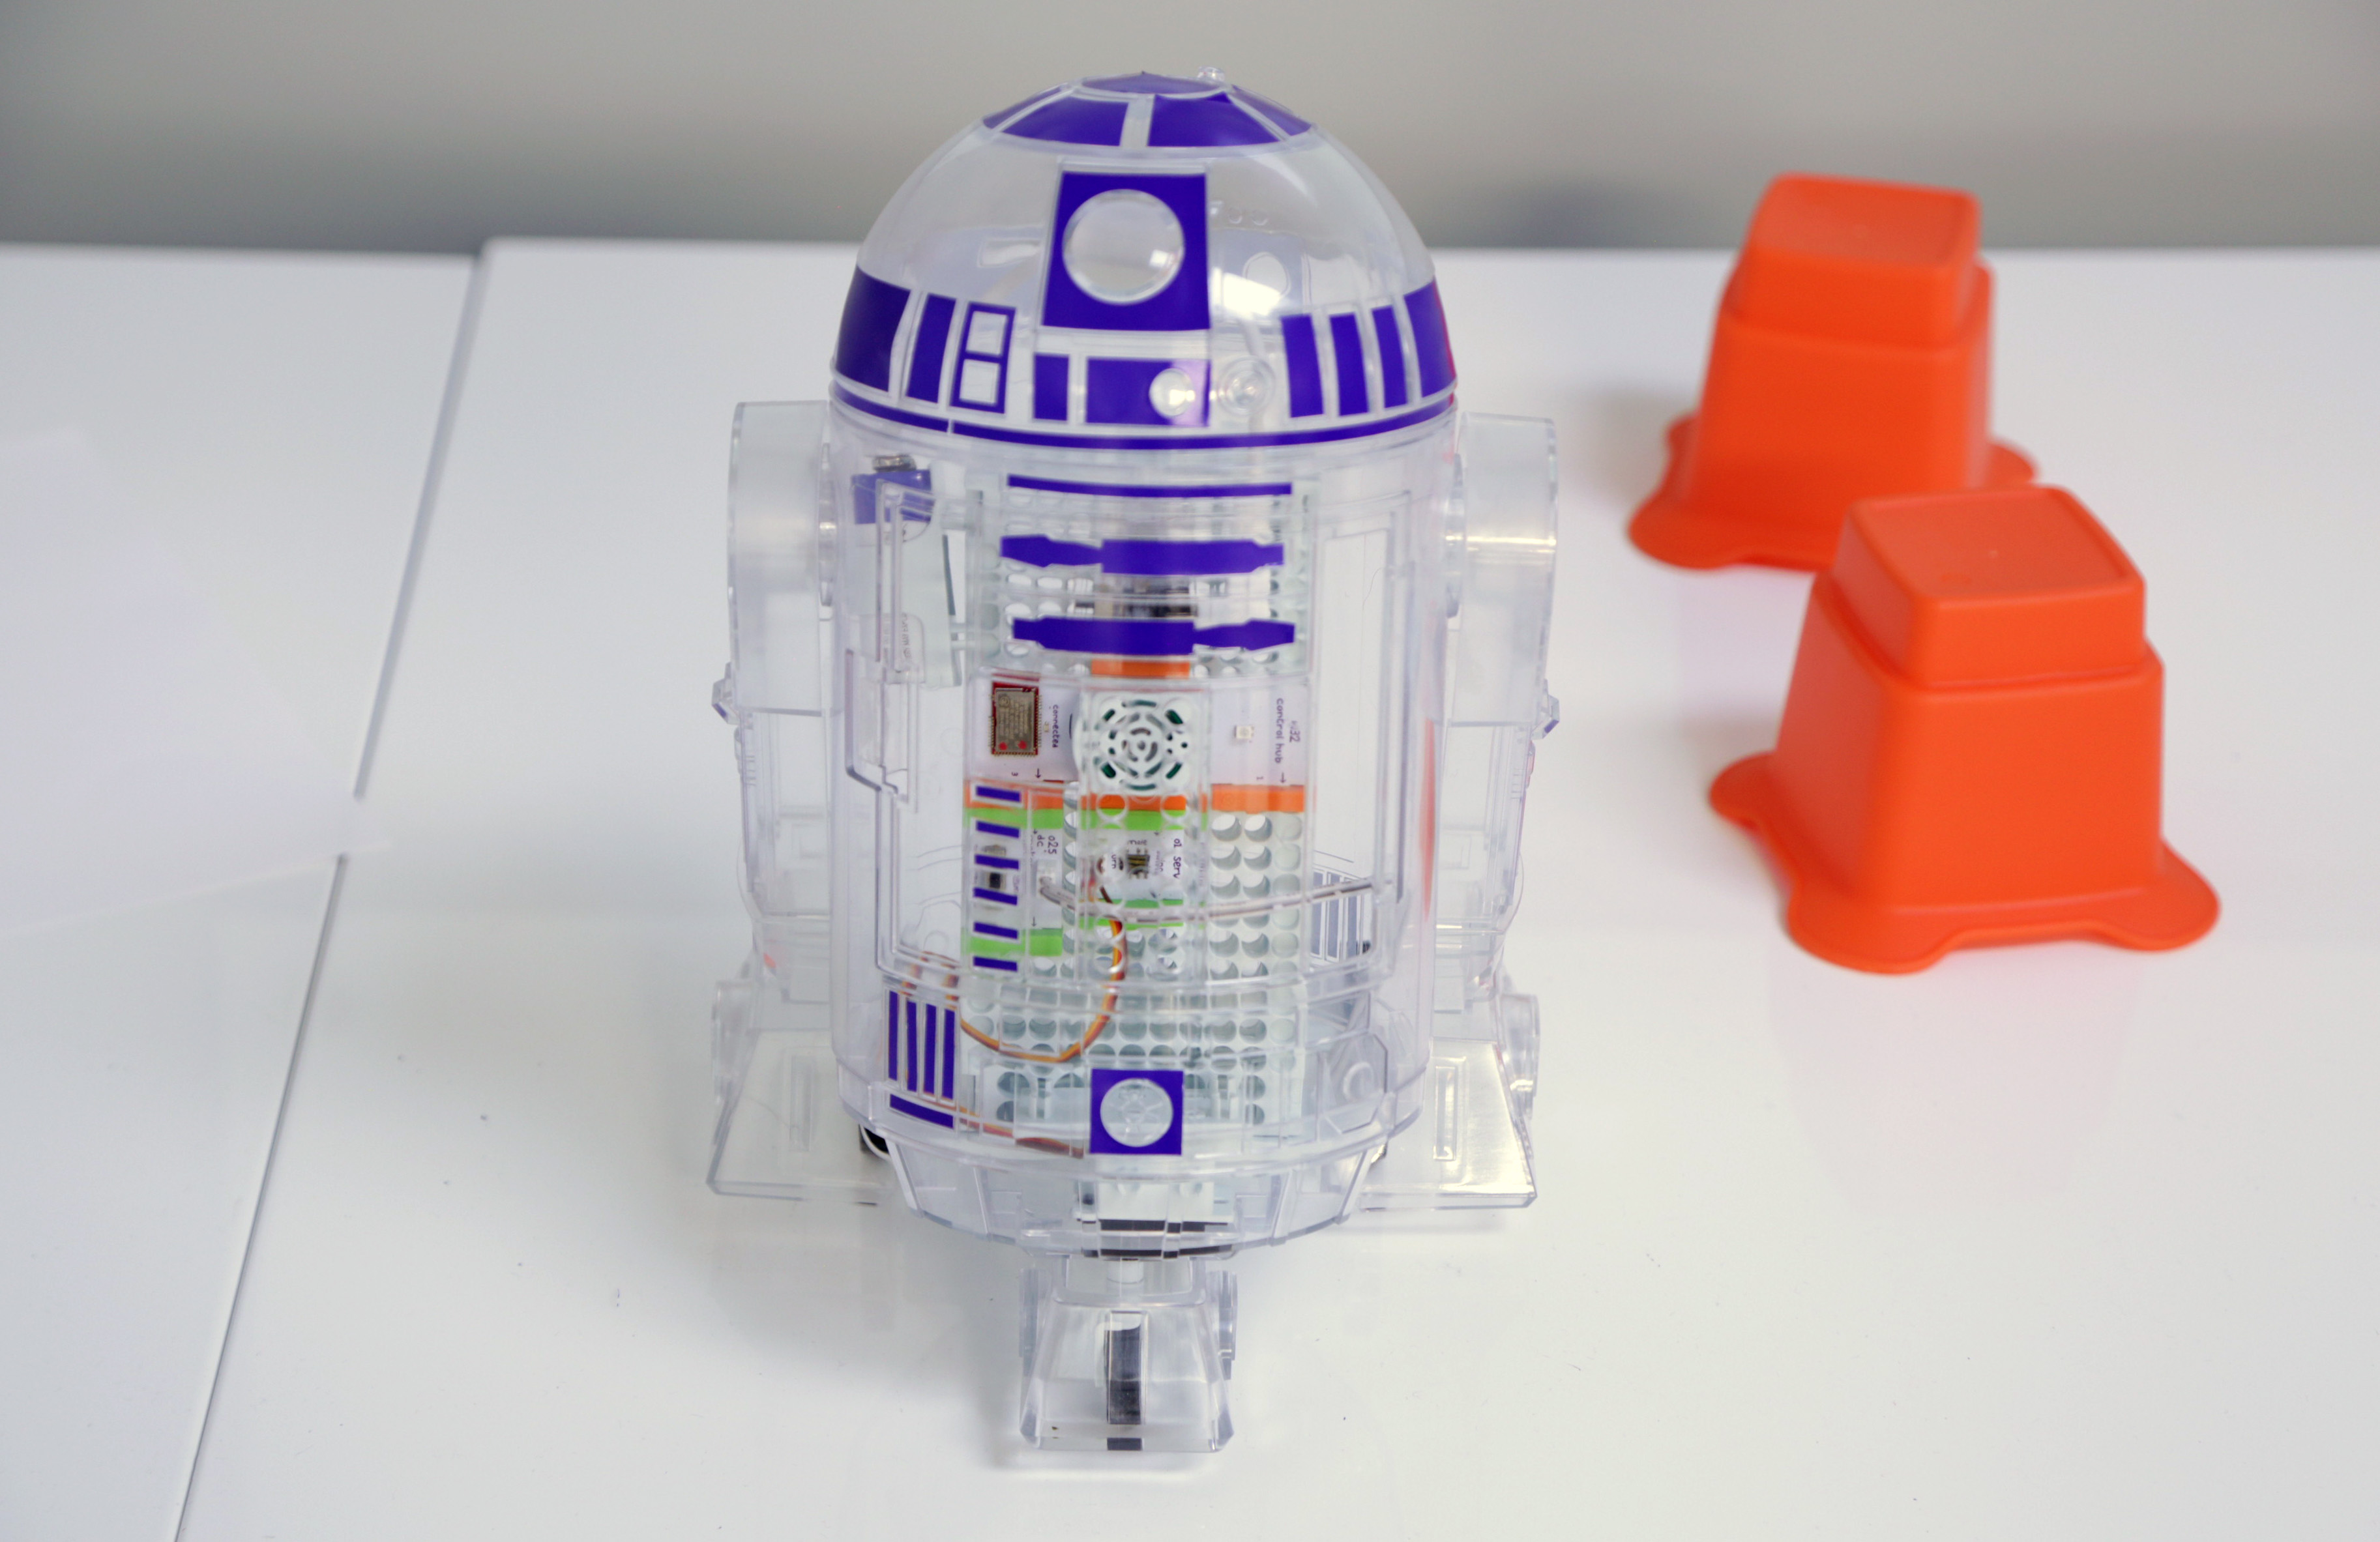 The Littlebits Droid Inventor Kit Lets You Build An R2 D2 Of Your Snap Circuits Space Battle It Was Founded Back In 2011 And Focuses On Introducing Kids To Electronics Circuitry By Way Modular Components That Together